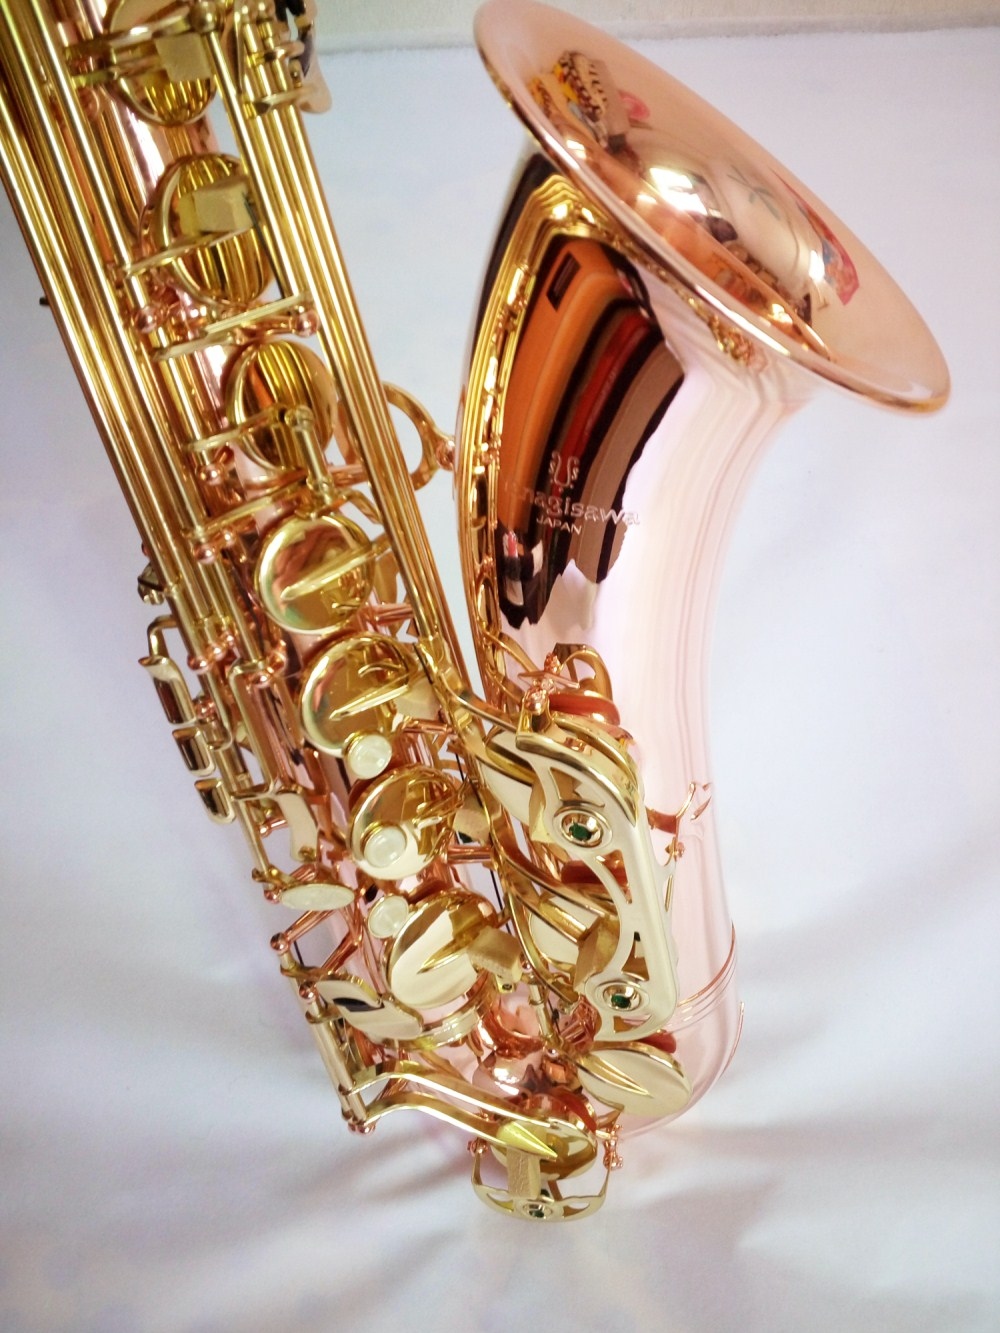 New Yanagisawa Tenor Saxophone T901 High Quality Sax B flat tenor saxophone playing professionally paragraph Music Saxophone tenor saxophone free shipping selmer instrument saxophone wire drawing bronze copper 54 professional b mouthpiece sax saxophone